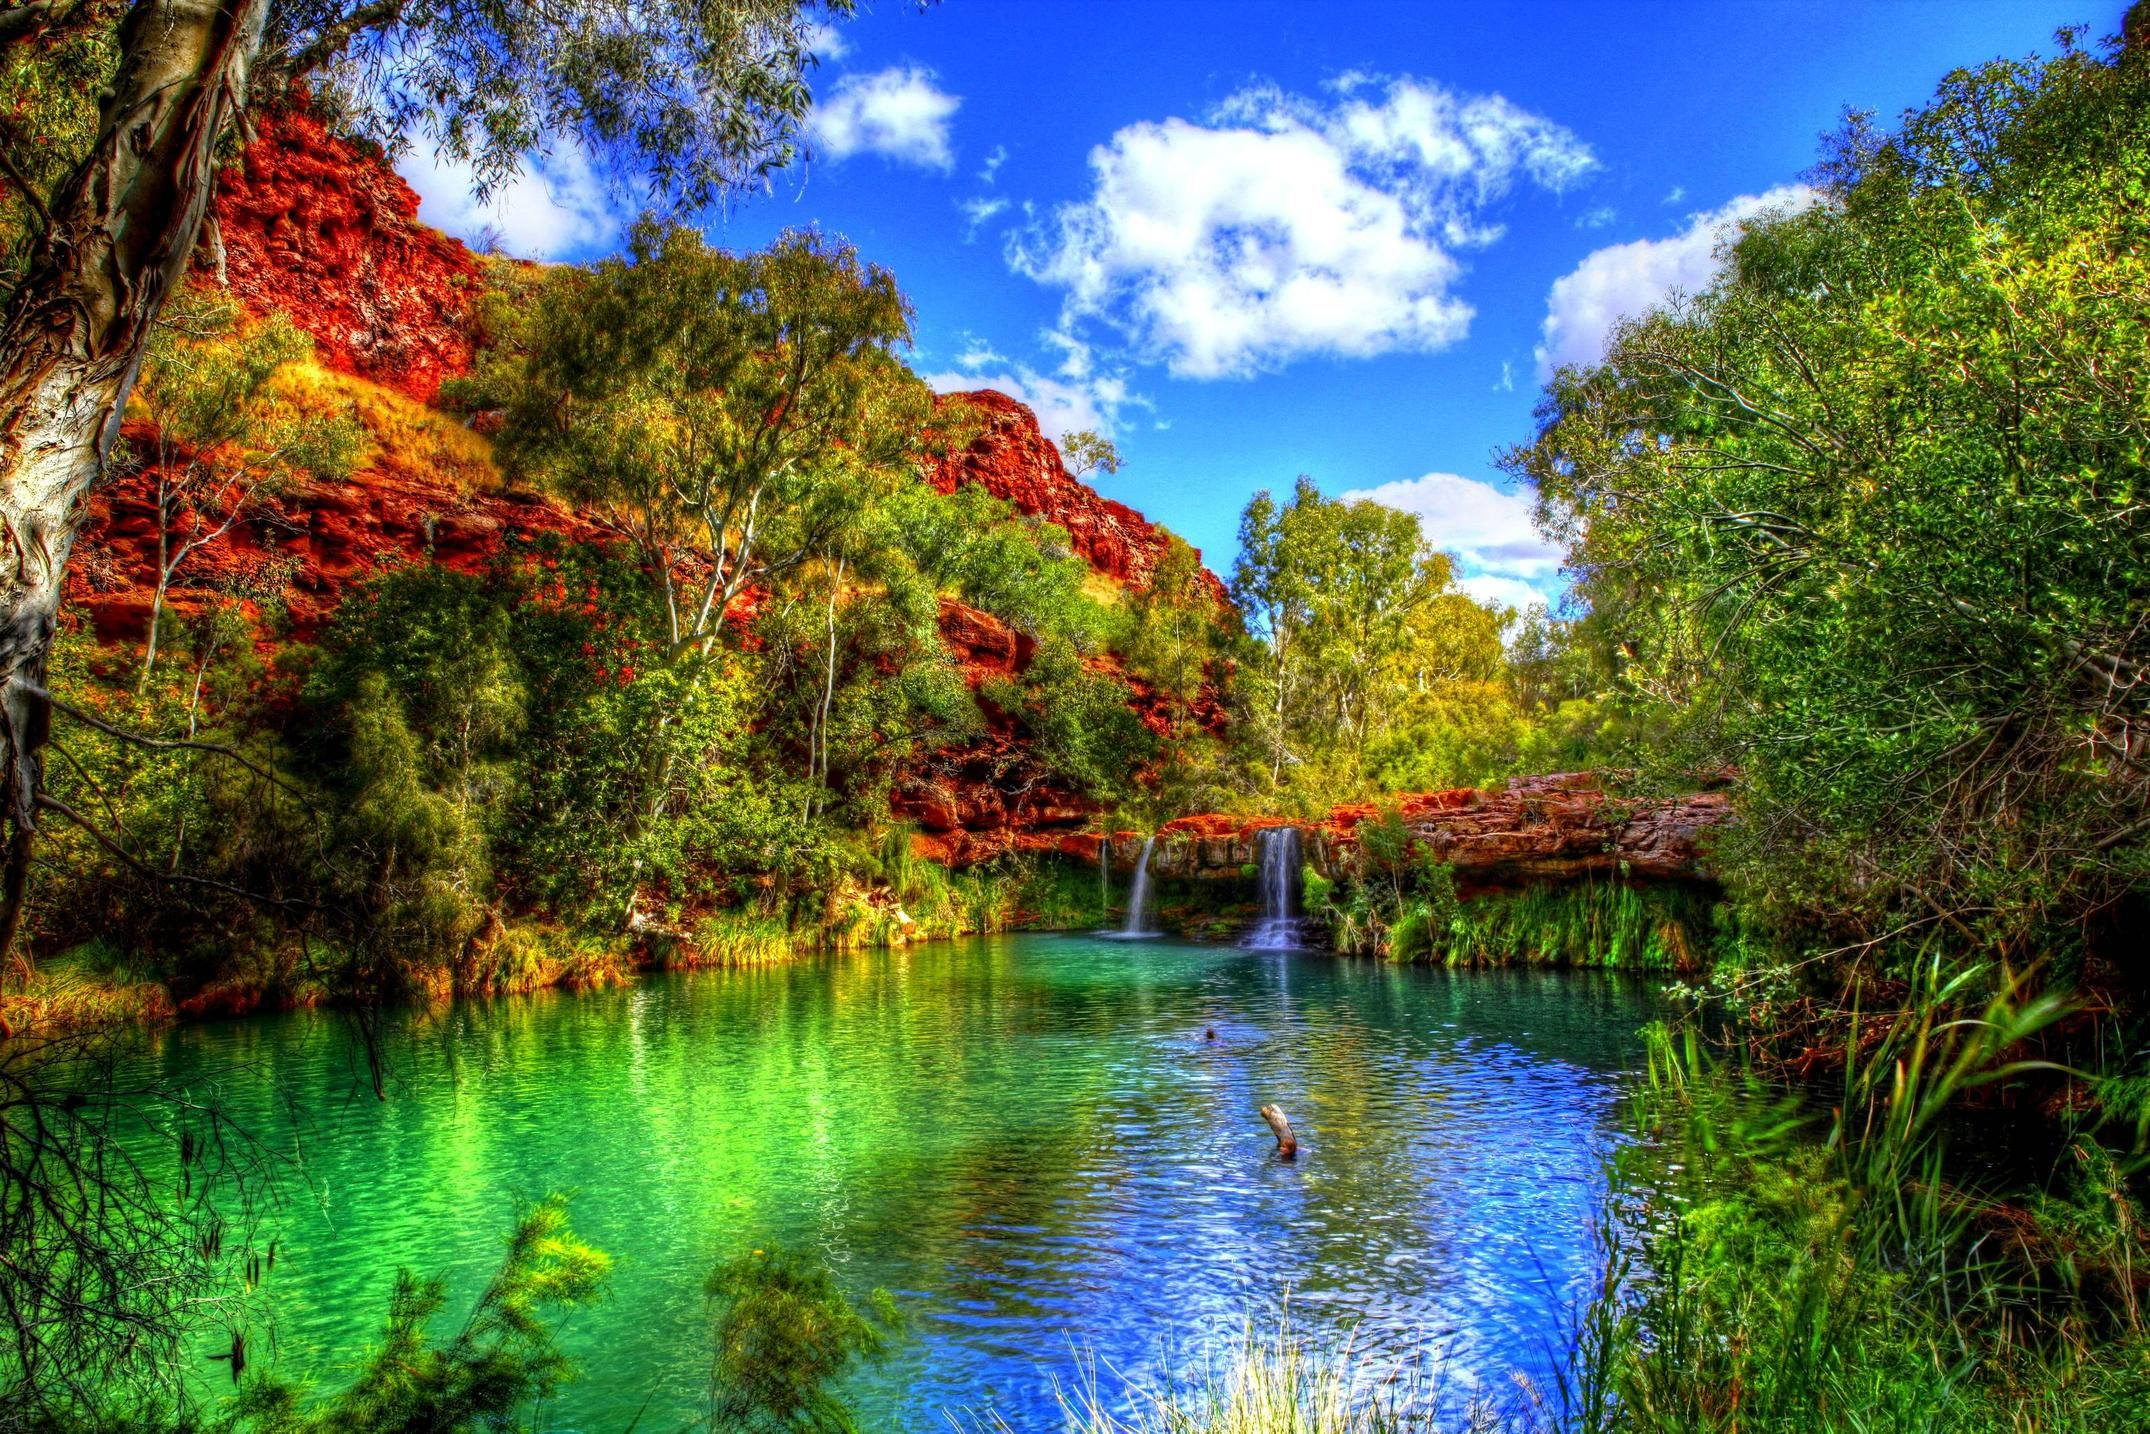 Spring Scenery Wallpaper Android Apps on Google Play